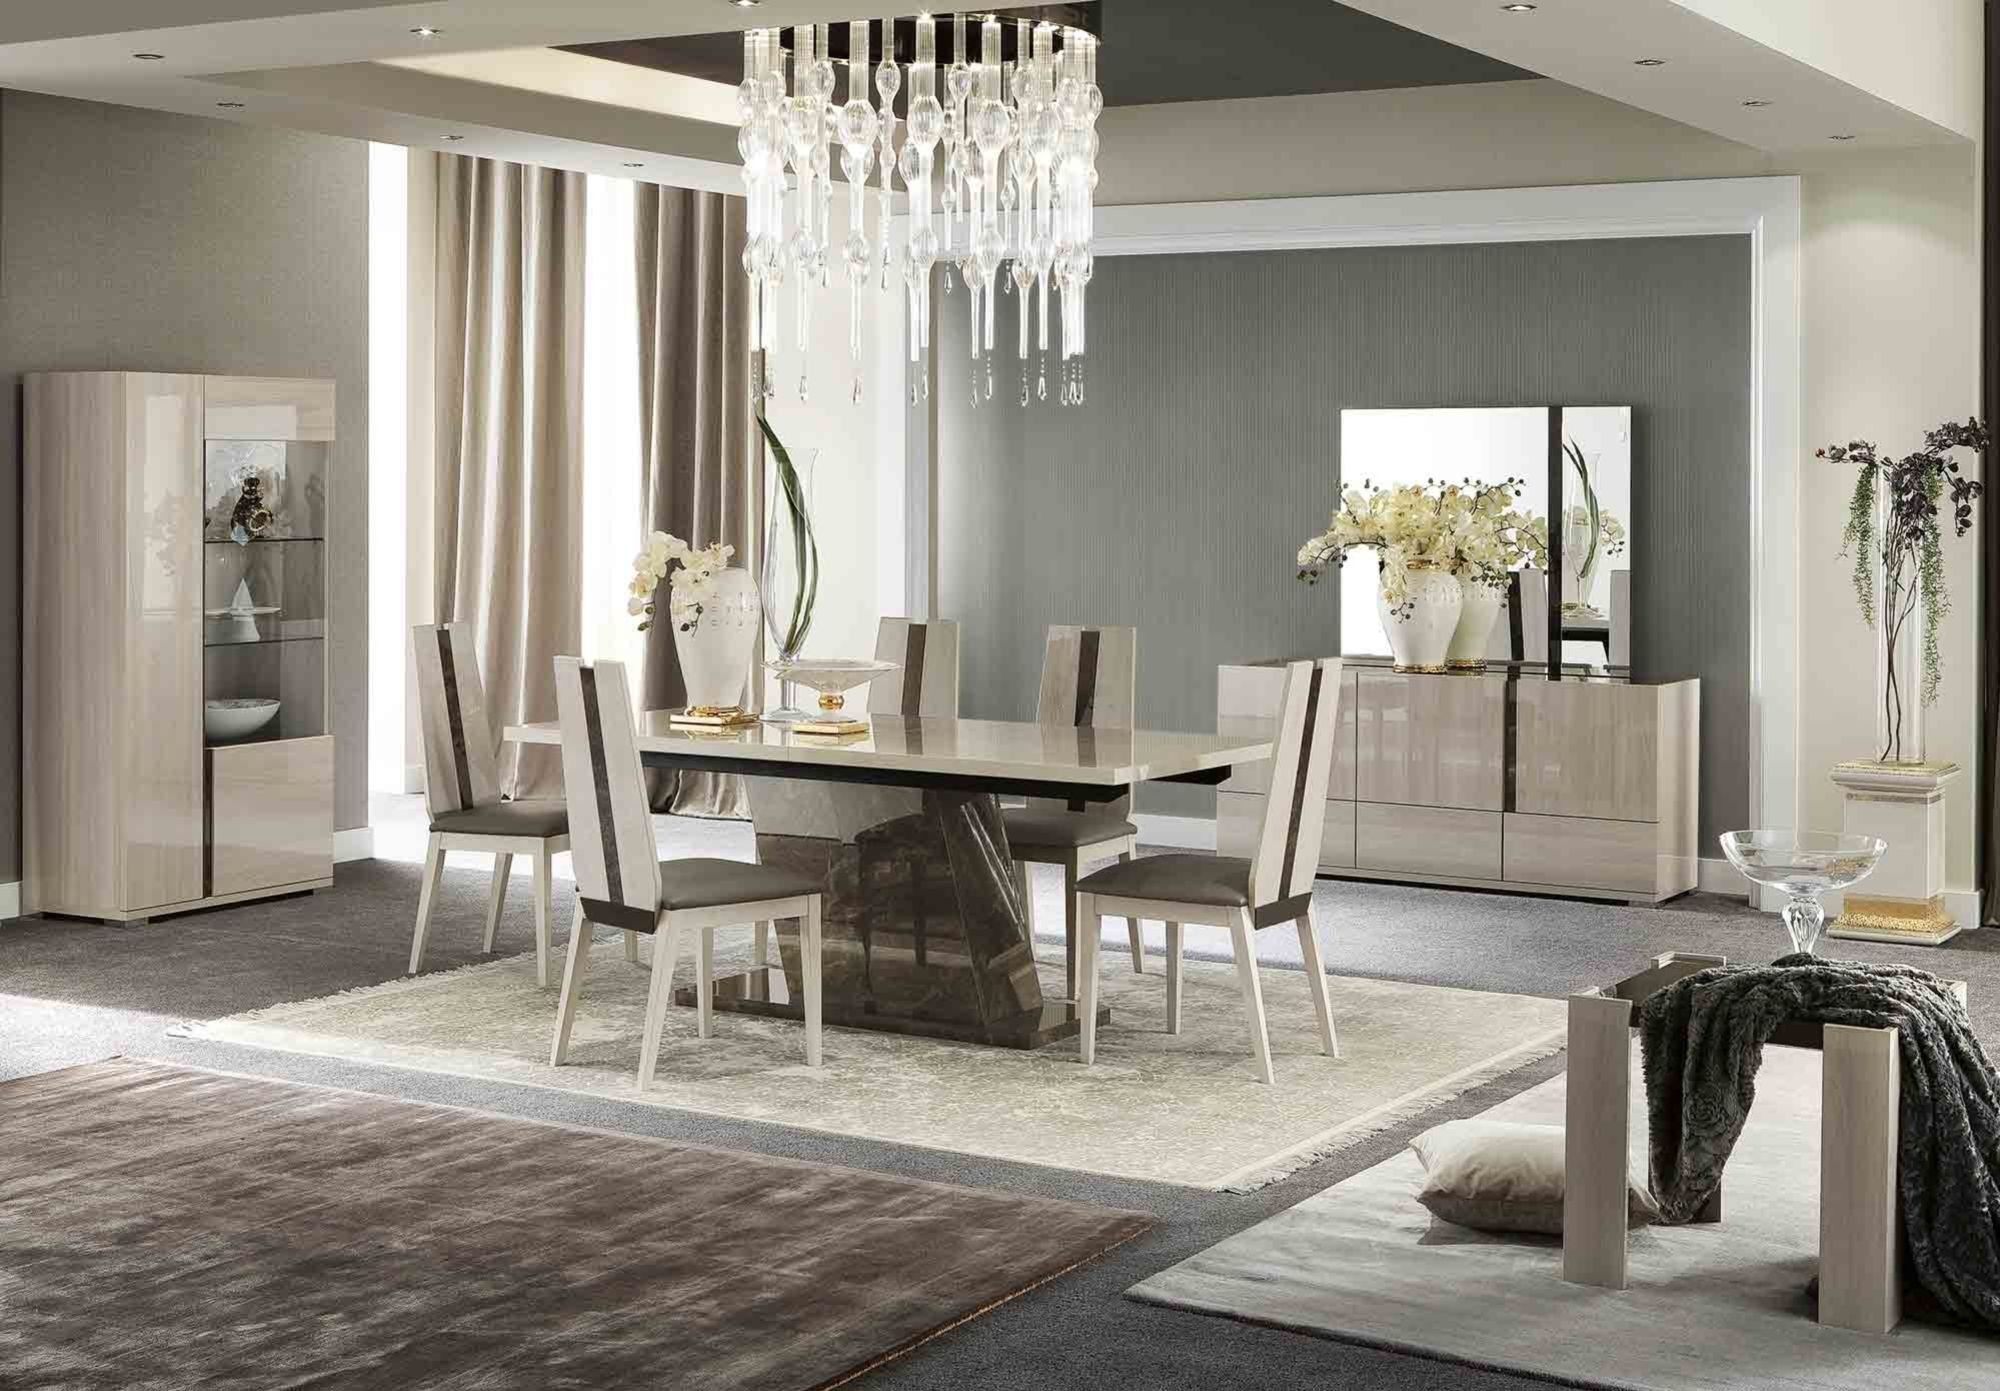 Italian Extendable Dining Table Extending Dining Table Andorra Dining Furniture From Furniture